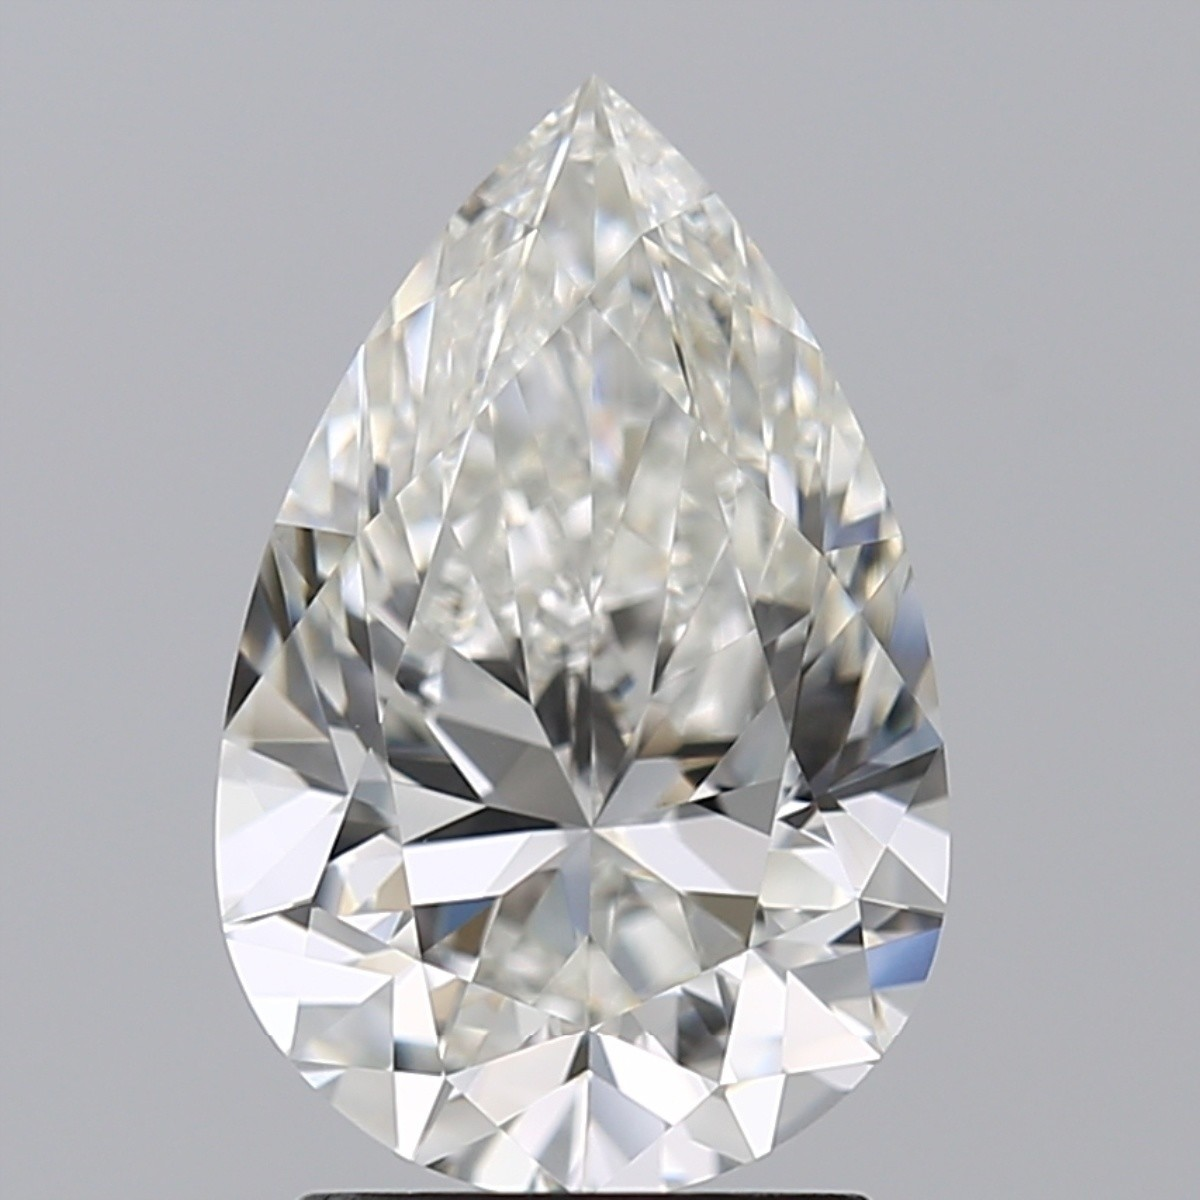 2.01 Carat Pear Diamond (H/VVS1)